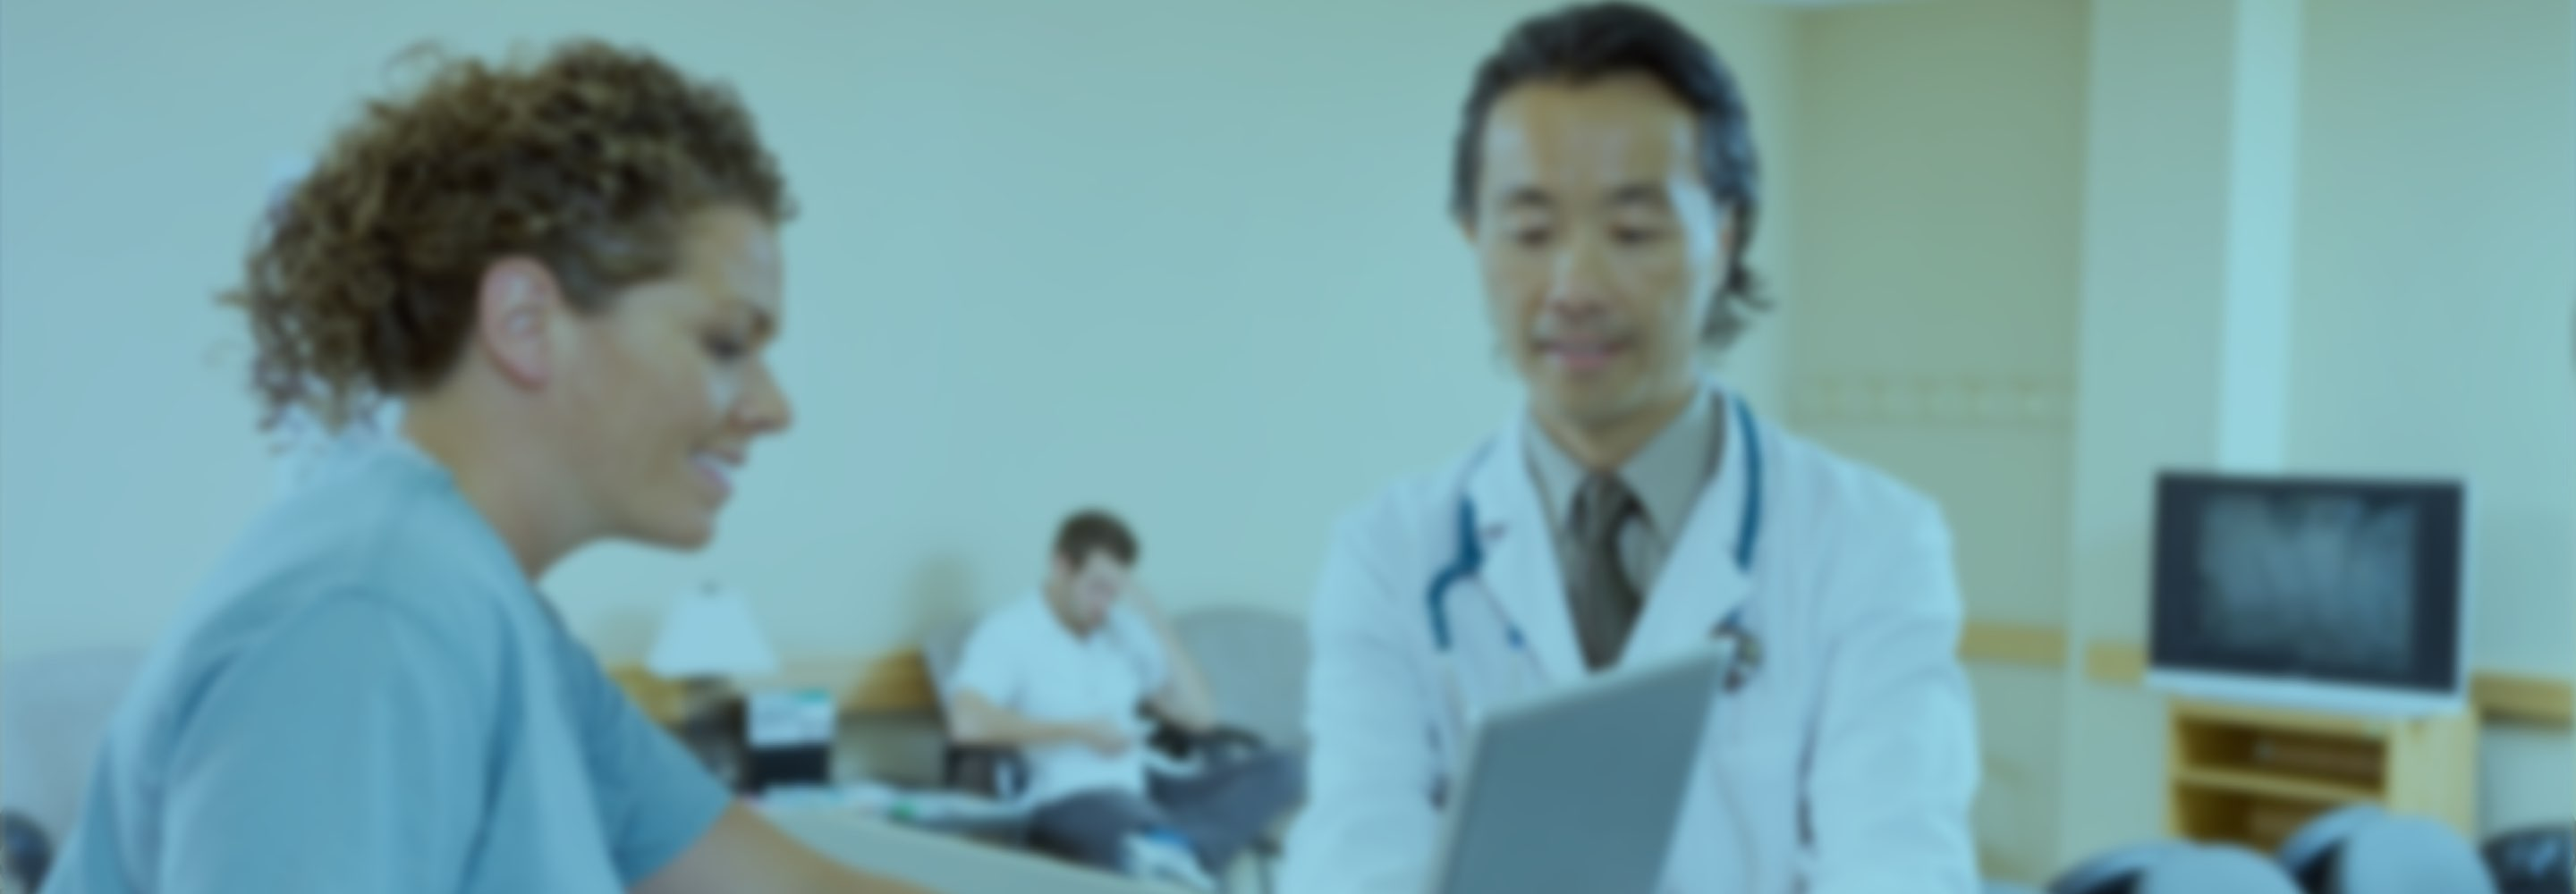 See how GoFormz helps companies throughout Healthcare organizations save time, reduce errors and work efficiently.